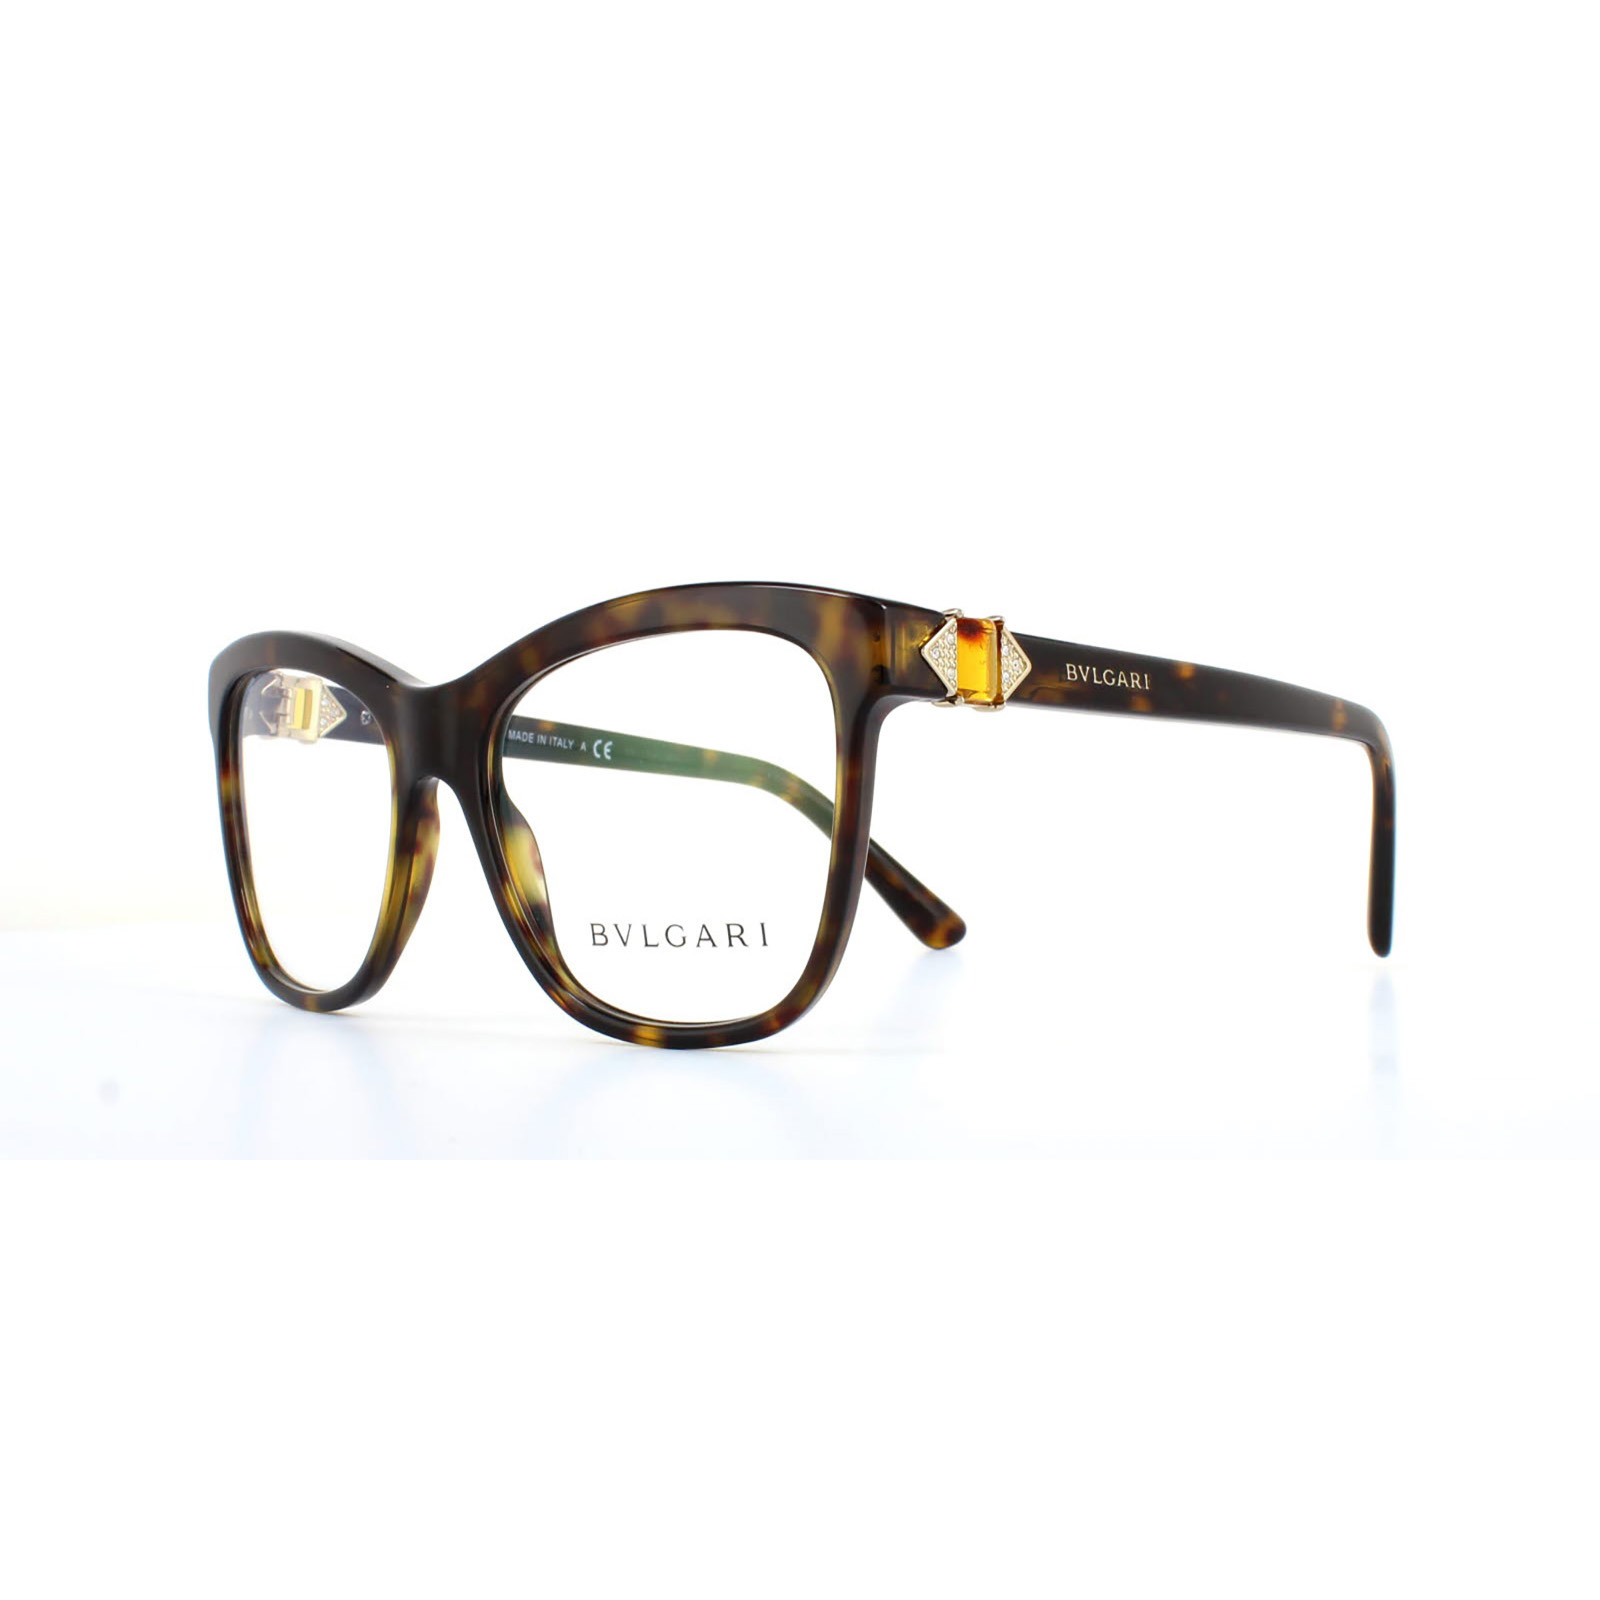 08aad14fda1 Bvlgari Eyeglass Frames For Women